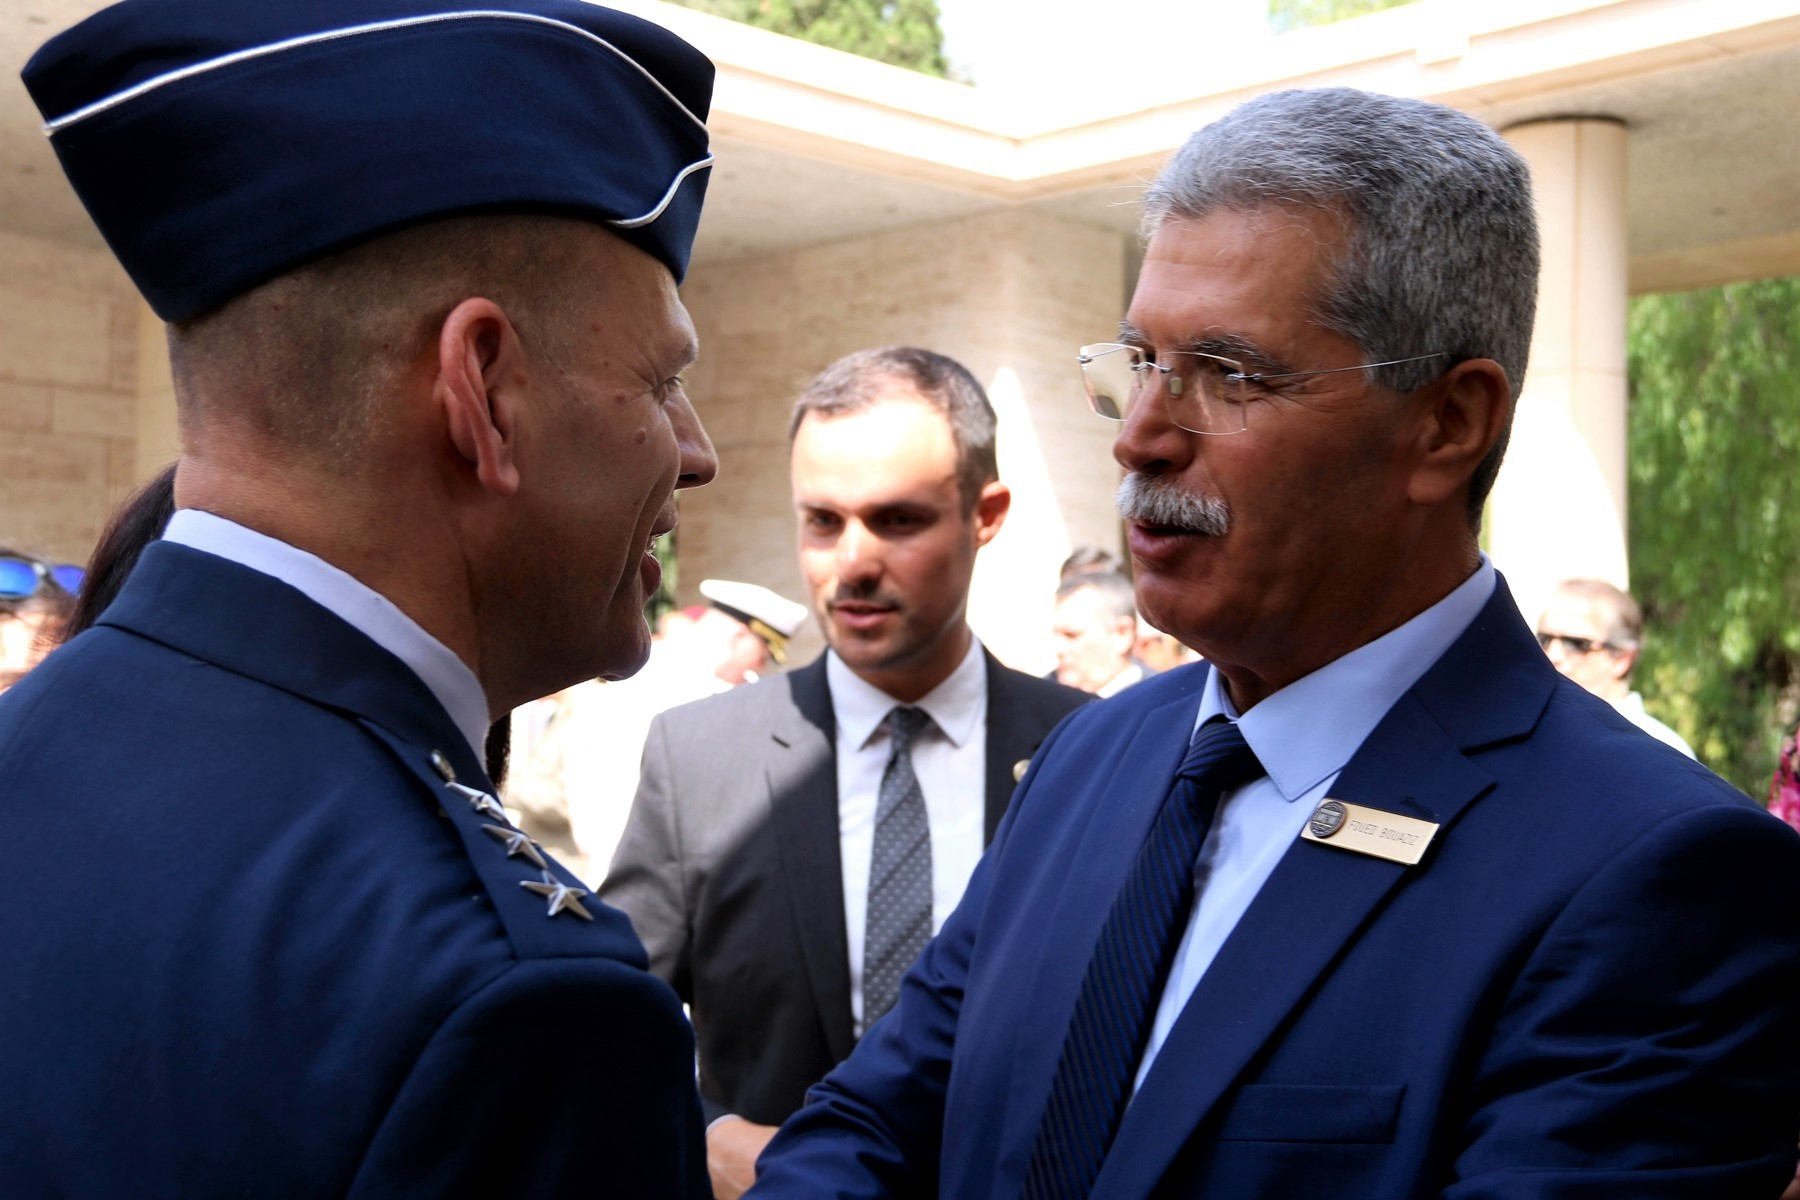 U.S. Air Force Lt. Gen. James C. Vechery, Deputy to the Commander for Military Operations, U.S. Africa Command talks with Mr. Foued Bouaziz, Acting Superintendent, North Africa American Cemetery, after the Memorial Day ceremony in Carthage, Tunisia, May 28, 2018. (Photo by Zouhaier SFAXI, U.S. Embassy Tunis)